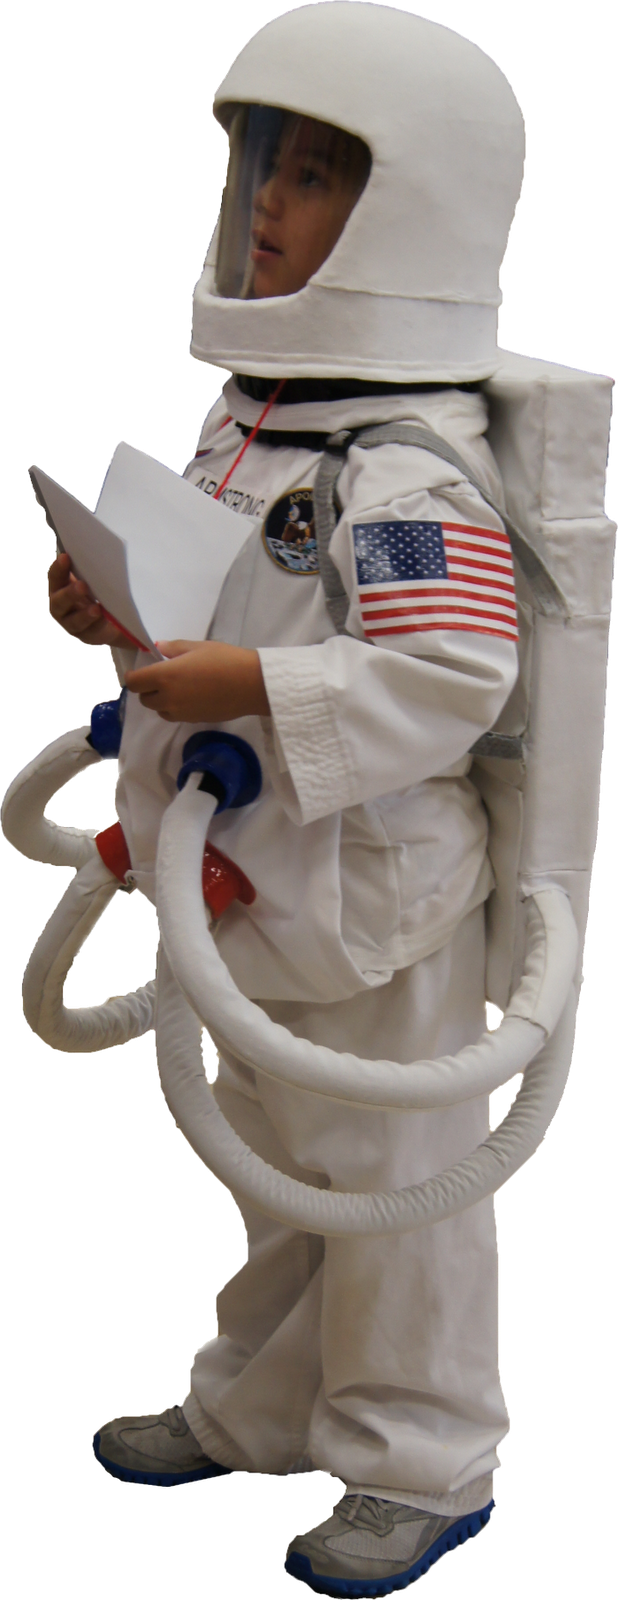 Astronaut Costume Hot glue gun